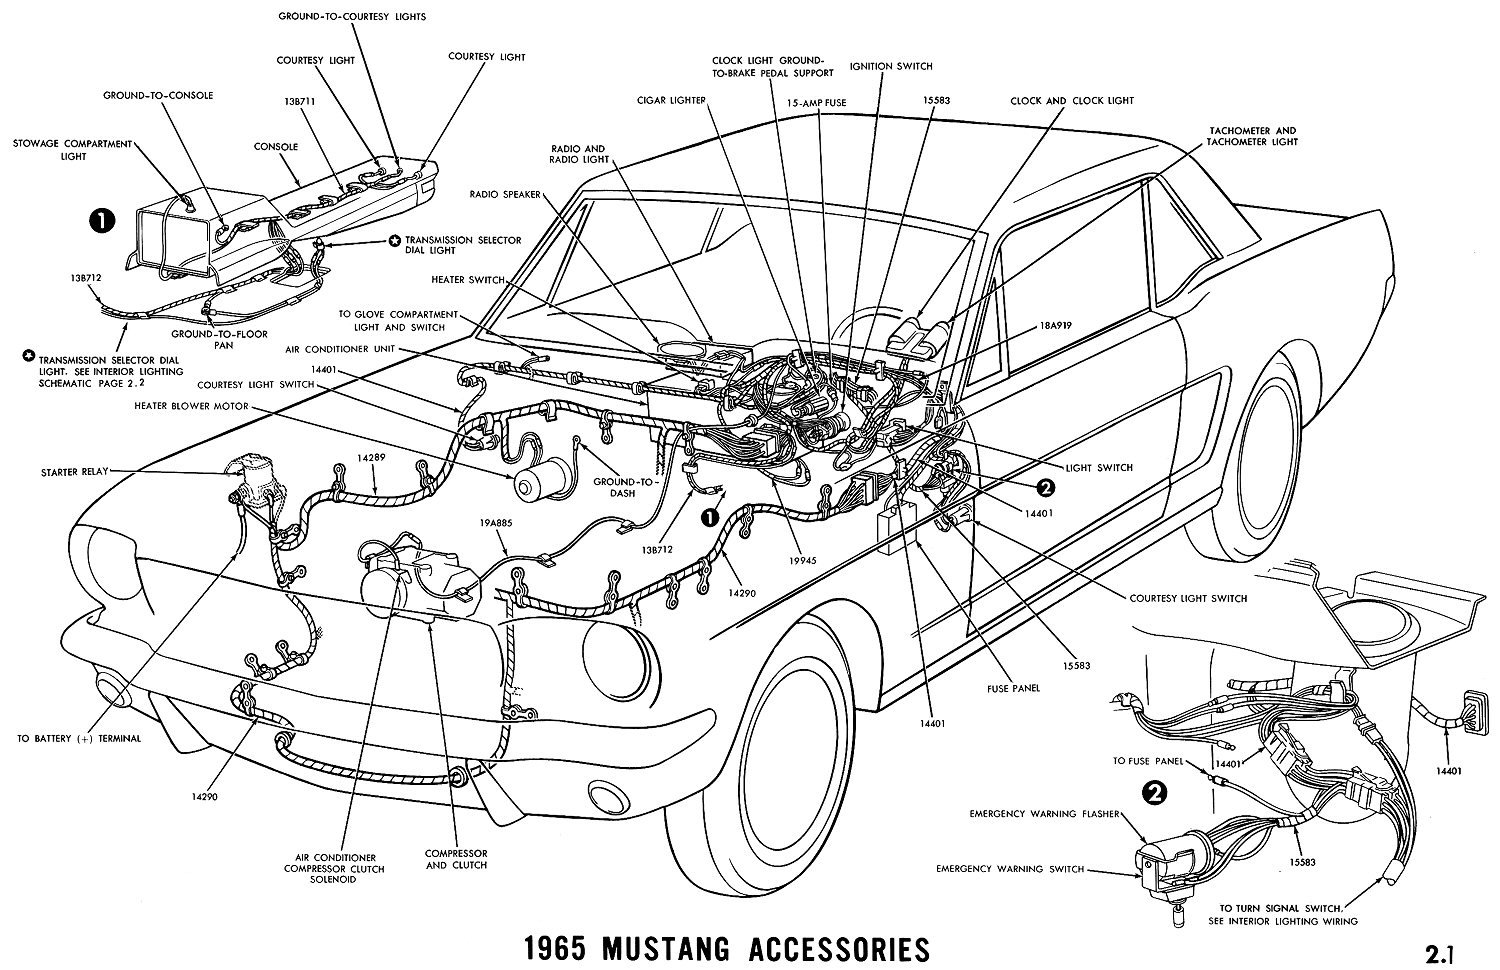 1965 mustang fuse box diagram coupe at 289 auto wiring diagram 1965 mustang fuse box wiring diagram mega 1965 mustang fuse box diagram coupe at 289